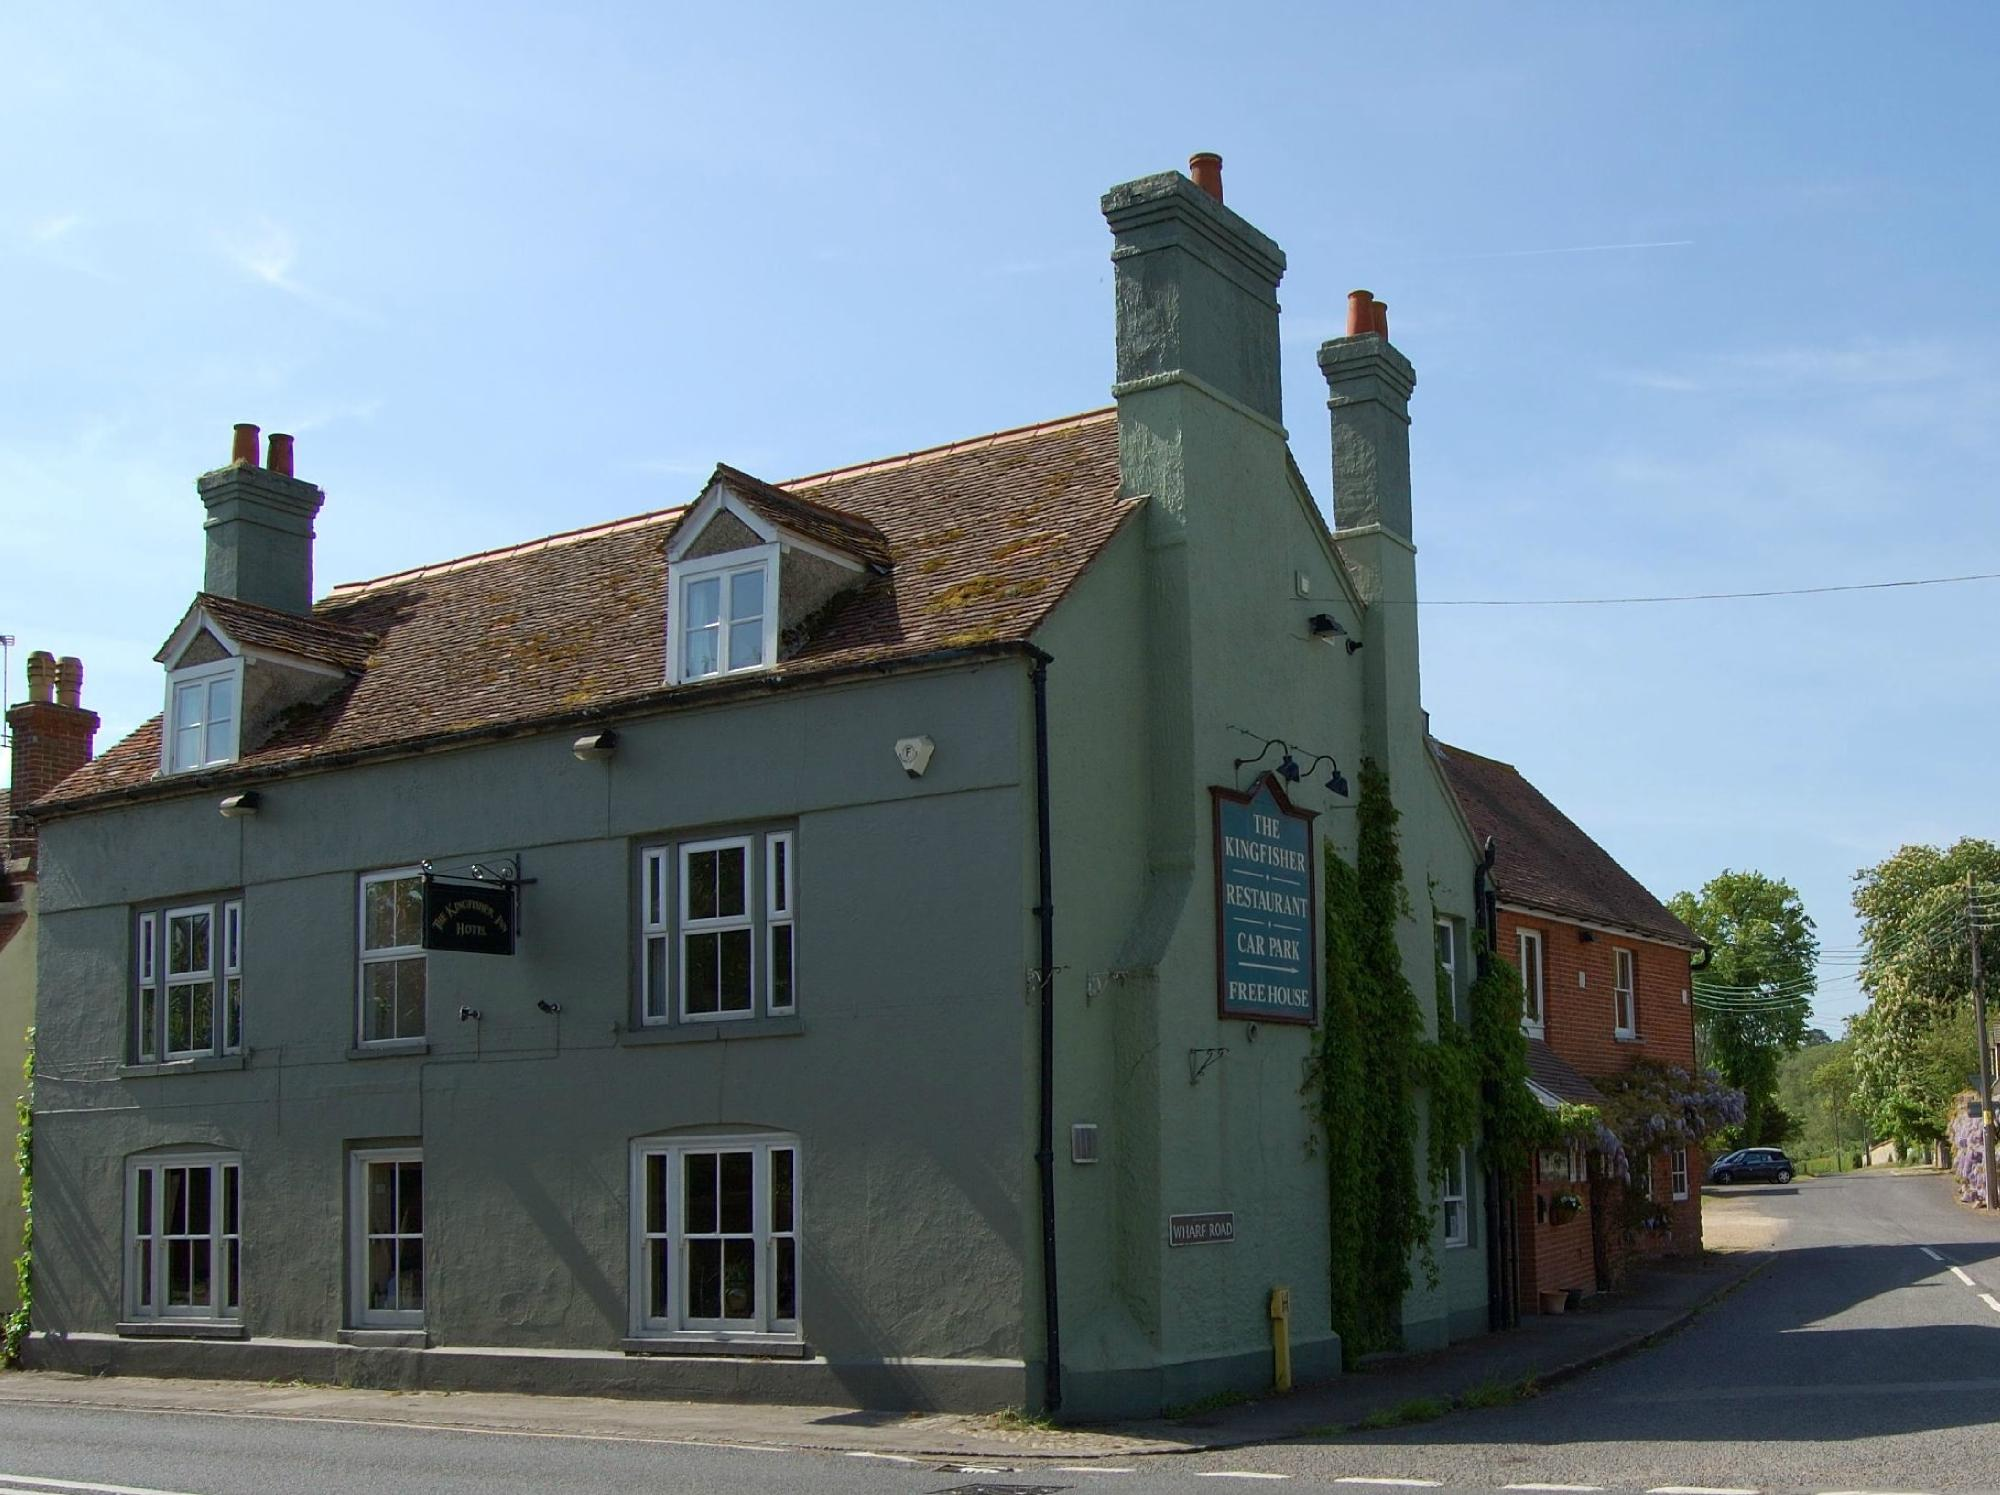 The Kingfisher Inn